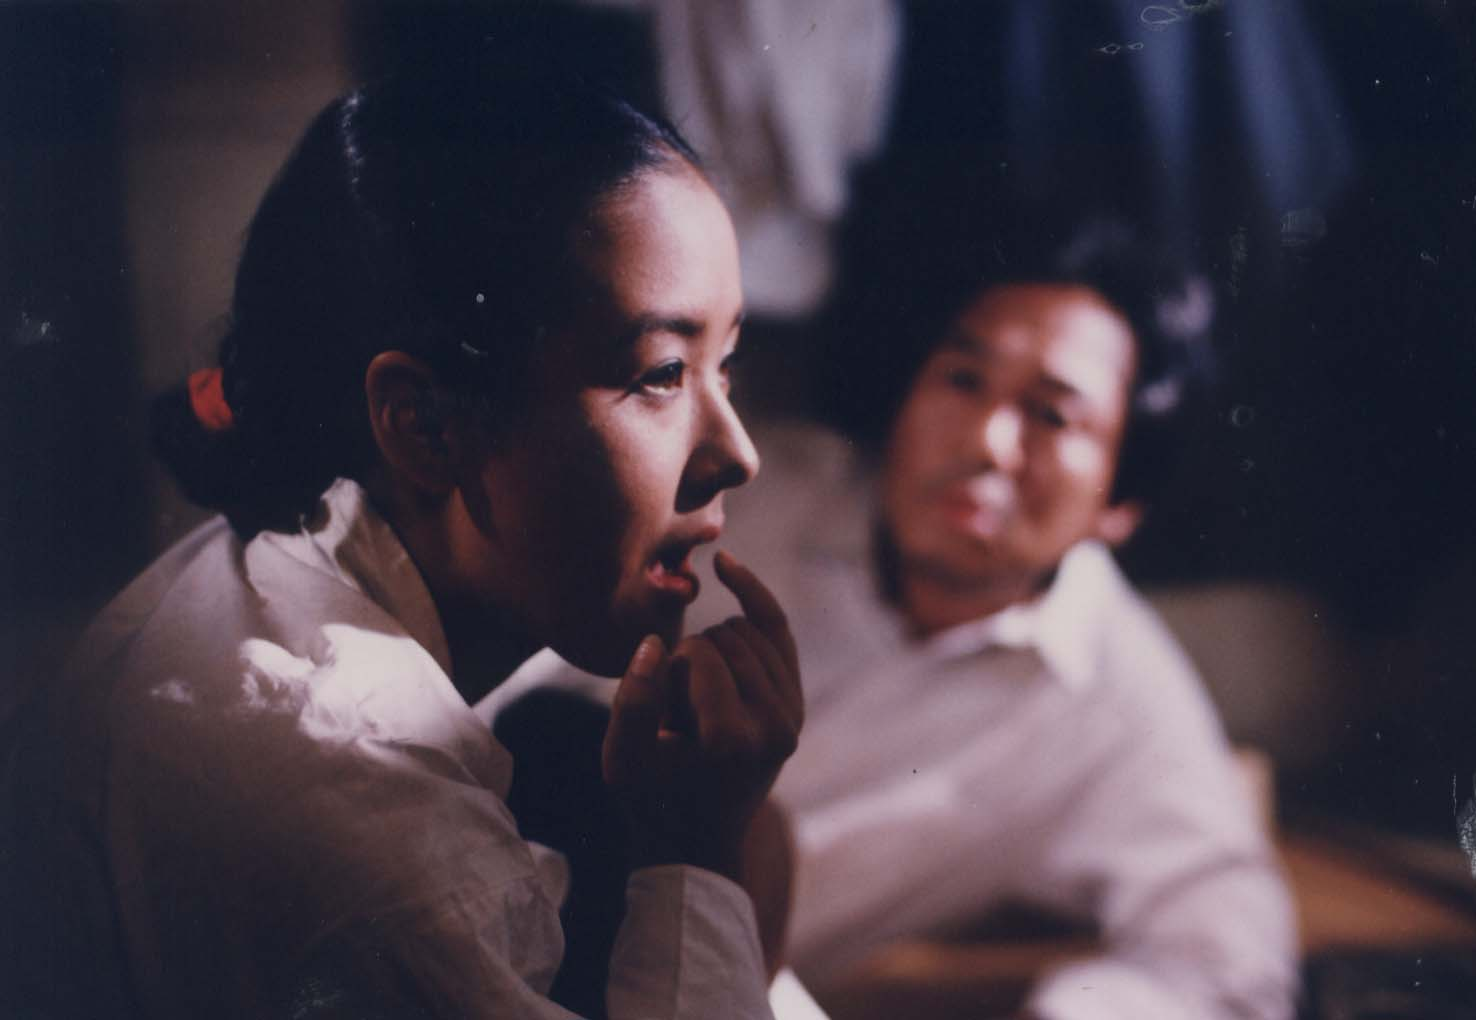 Image from 'Gamja' (1987), directed by Byeon Jangho